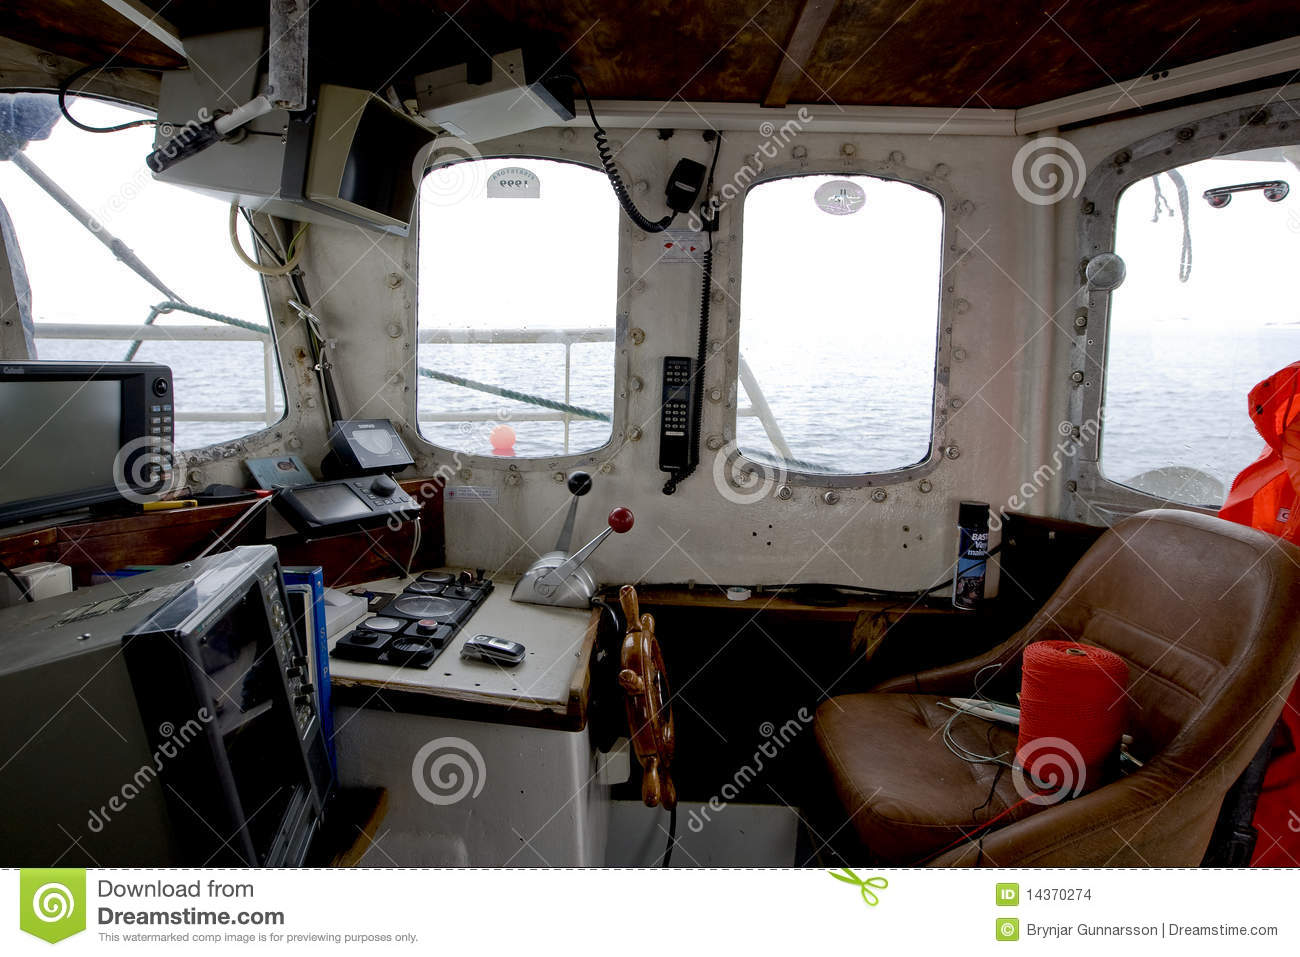 Wheelhouse Of A Small Fishing Vessel Stock Images - Image: 14370274